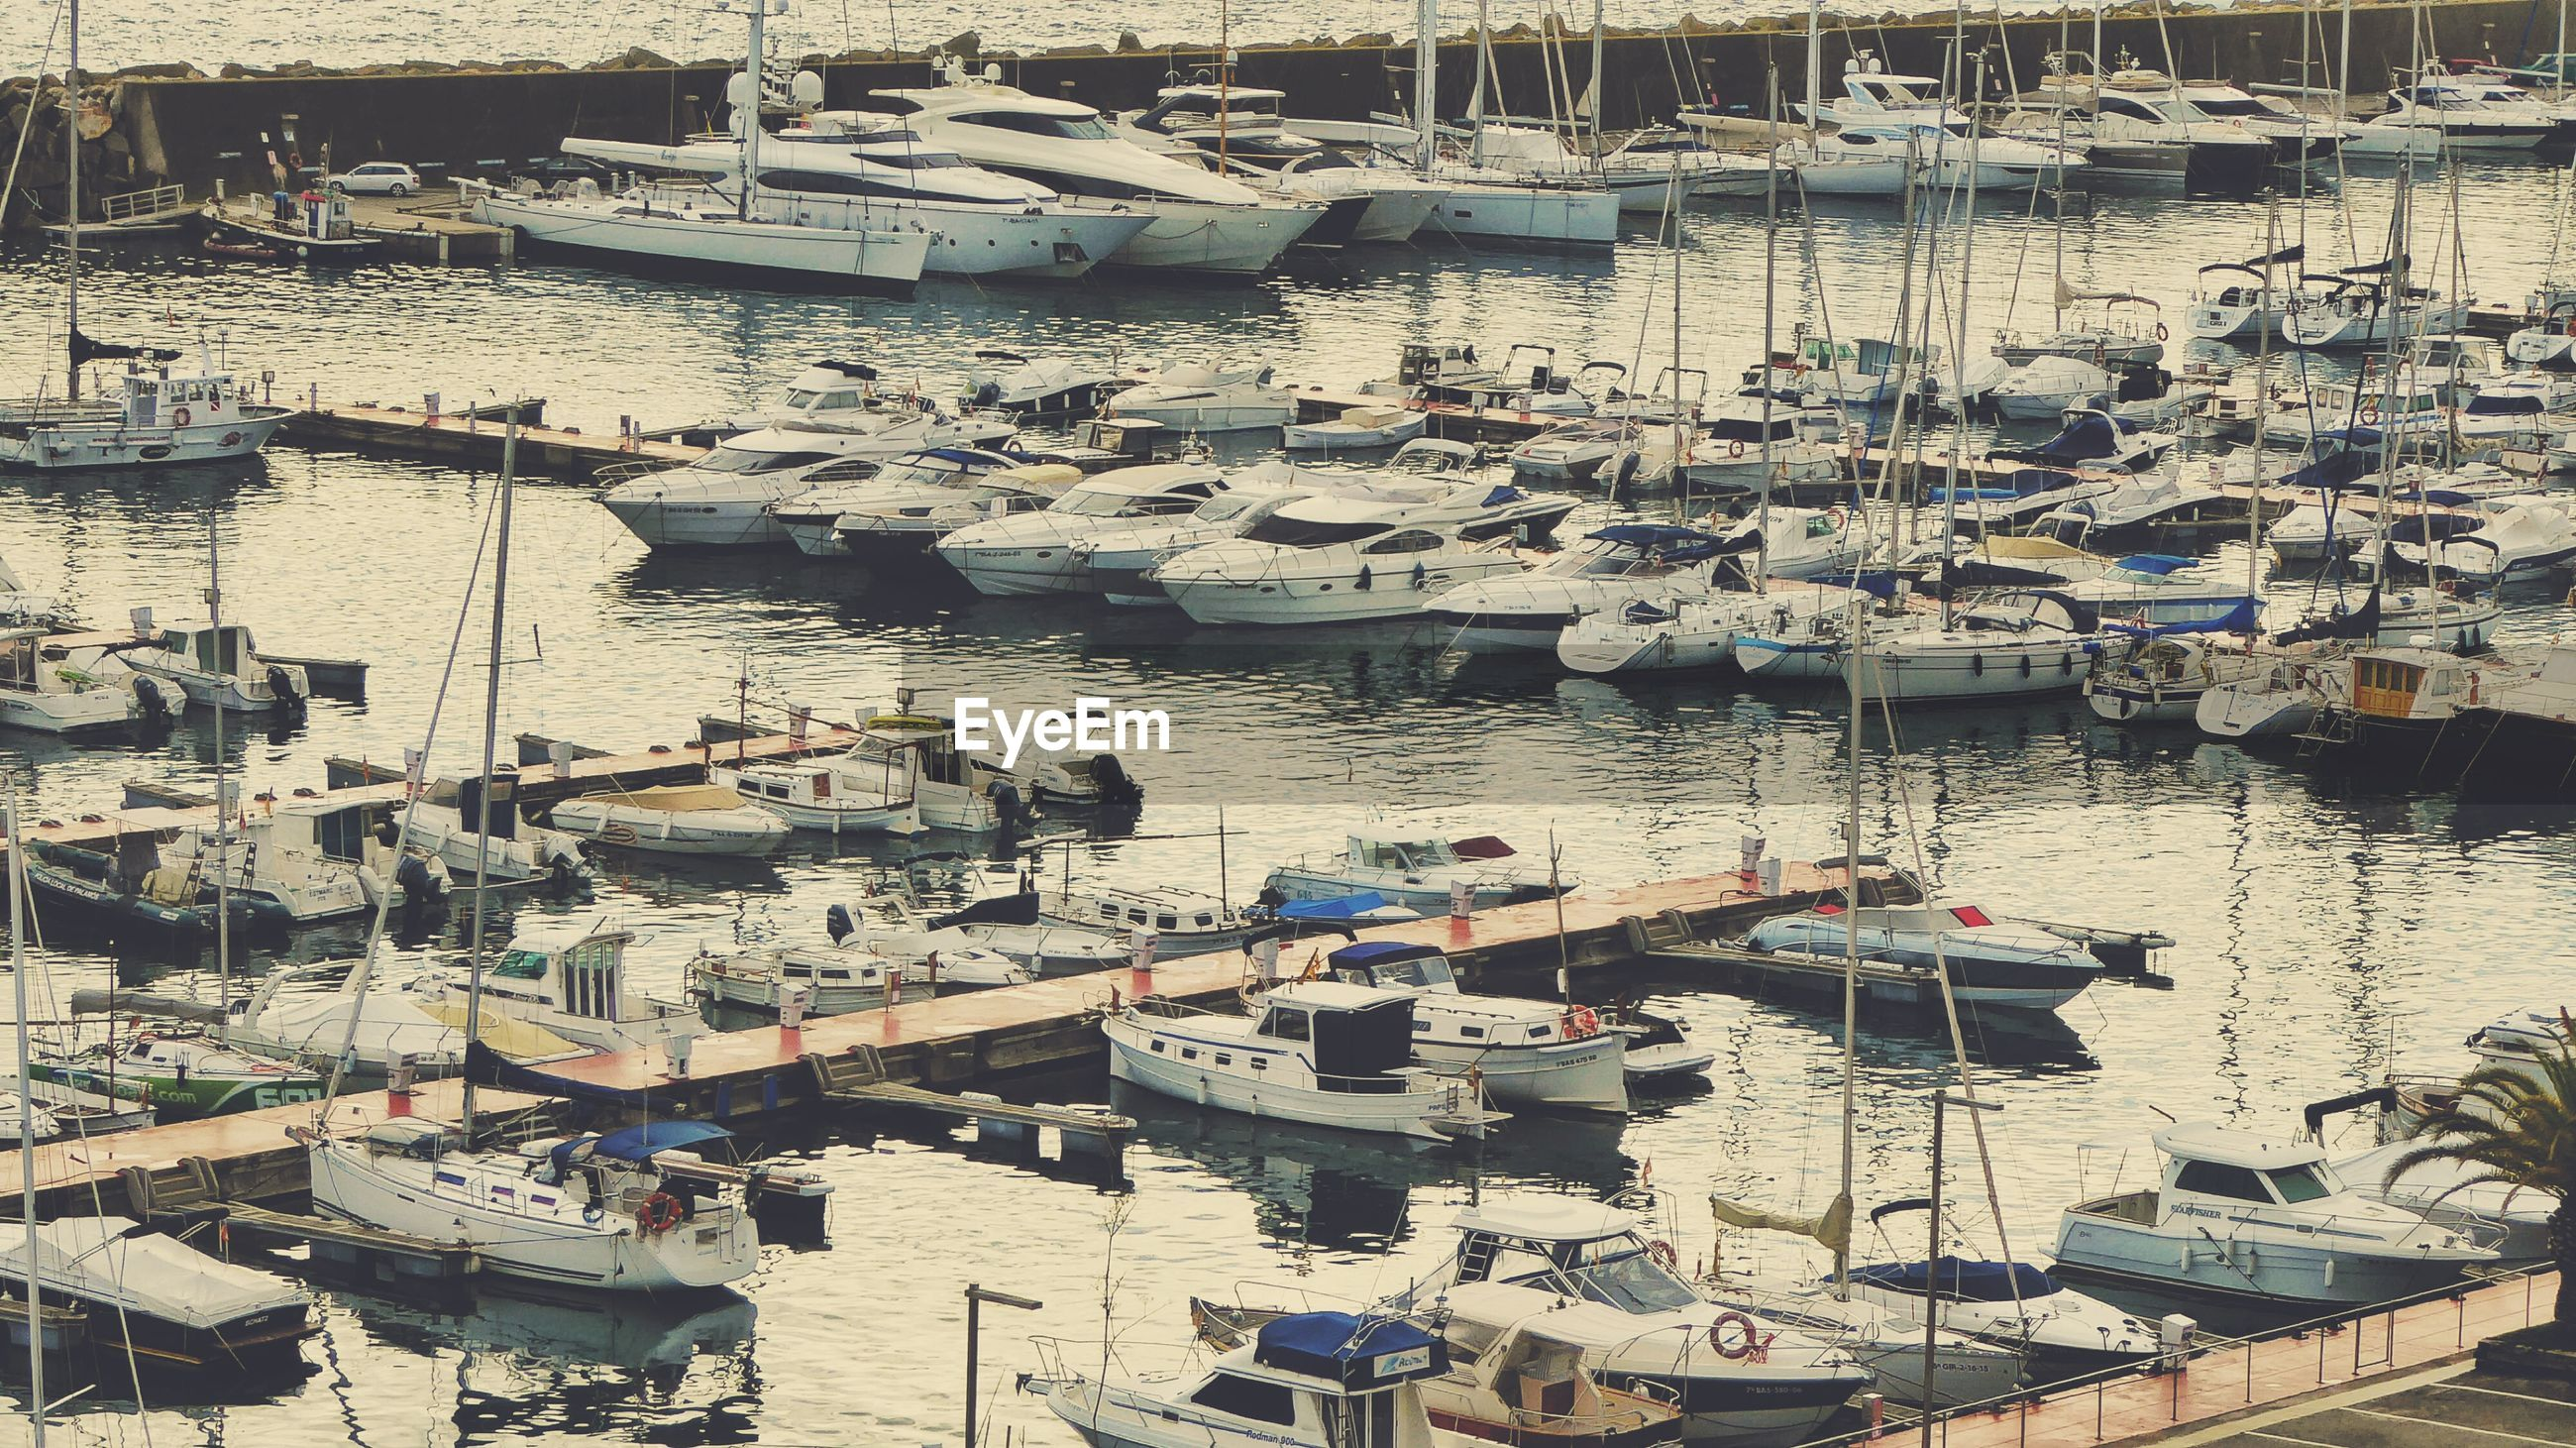 HIGH ANGLE VIEW OF BOATS MOORED IN HARBOR